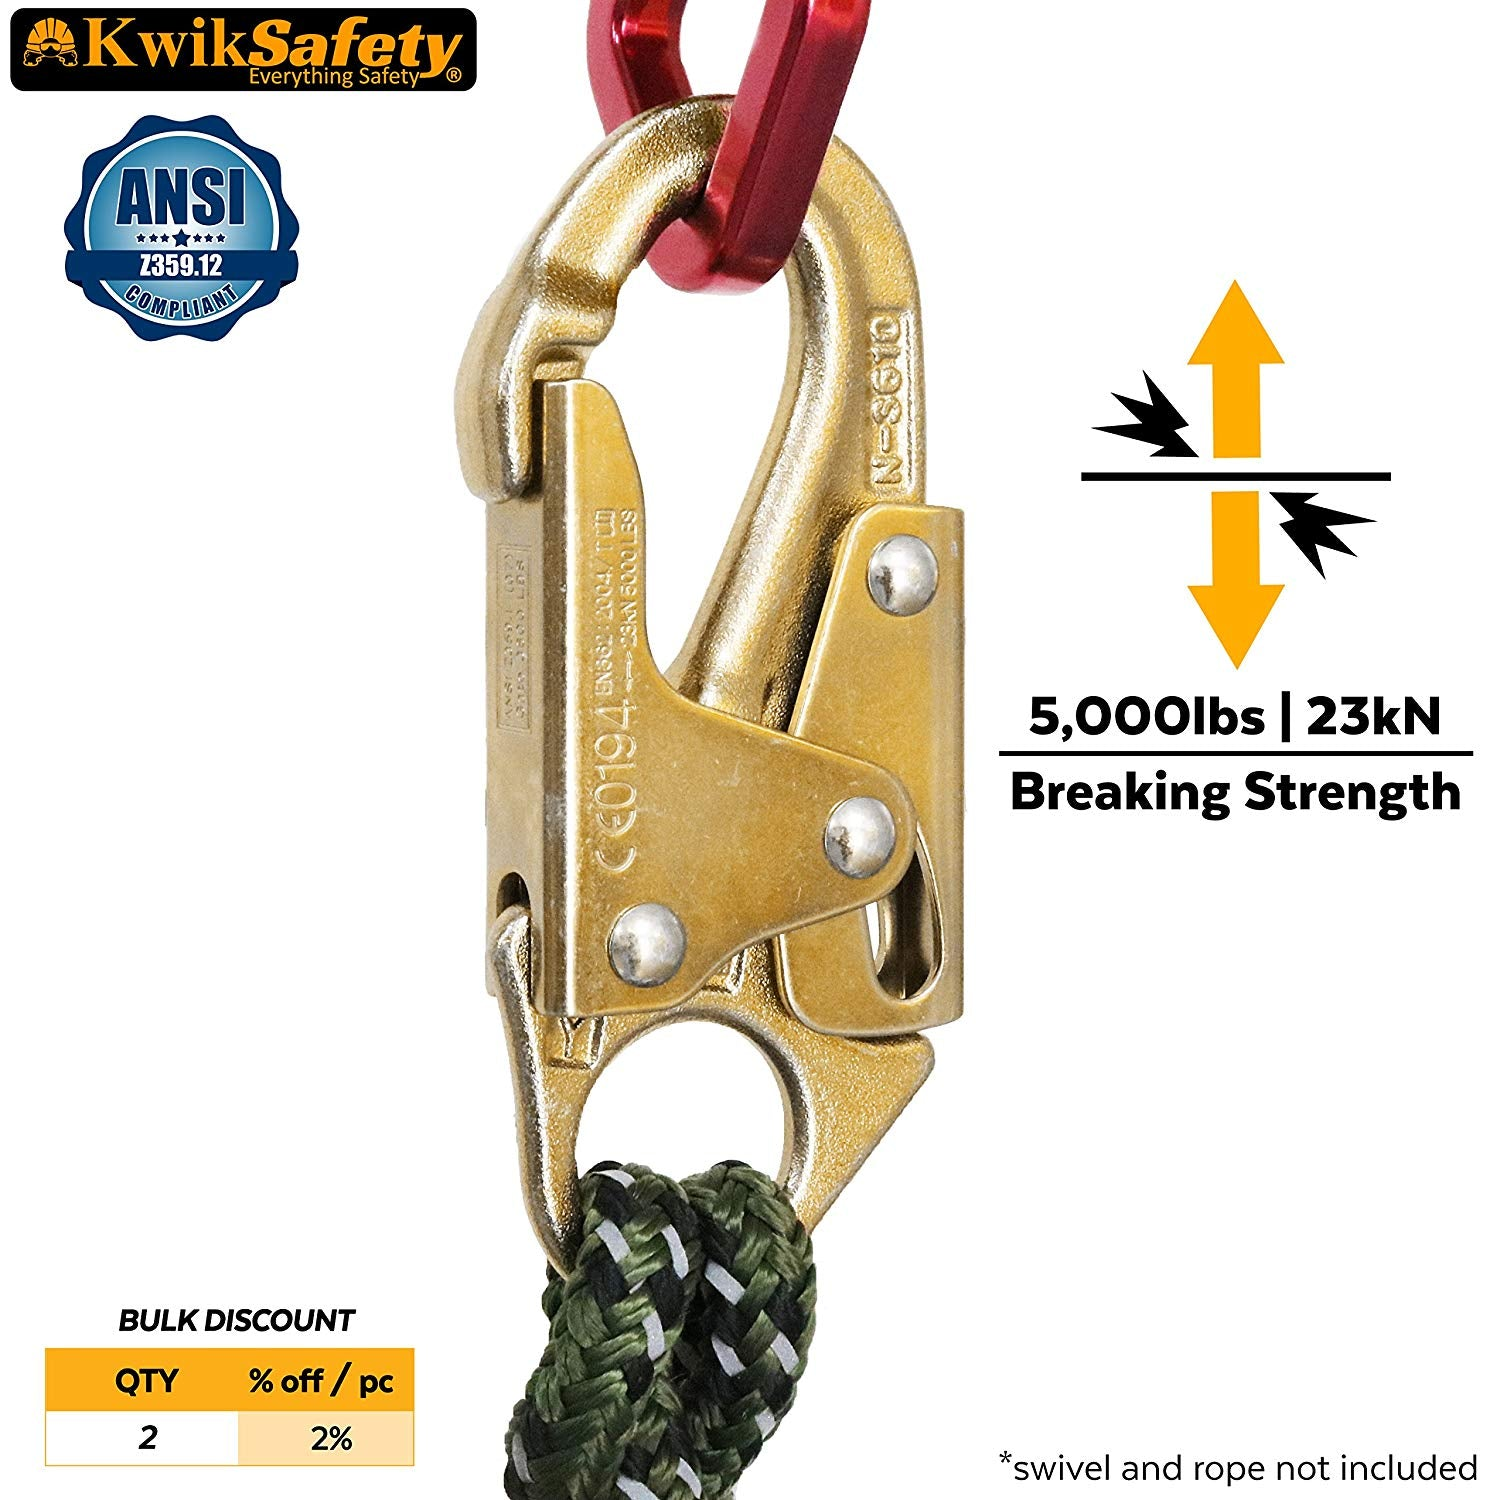 KwikSafety BOND | N-3610 Yoke ANSI Compliant Double Lock Snap Hook | Heavy Duty Heat Treated Forged Steel Connector | Personal Fall Arrest Industrial Construction Utility Hardware | 5,000lbs (23kN)